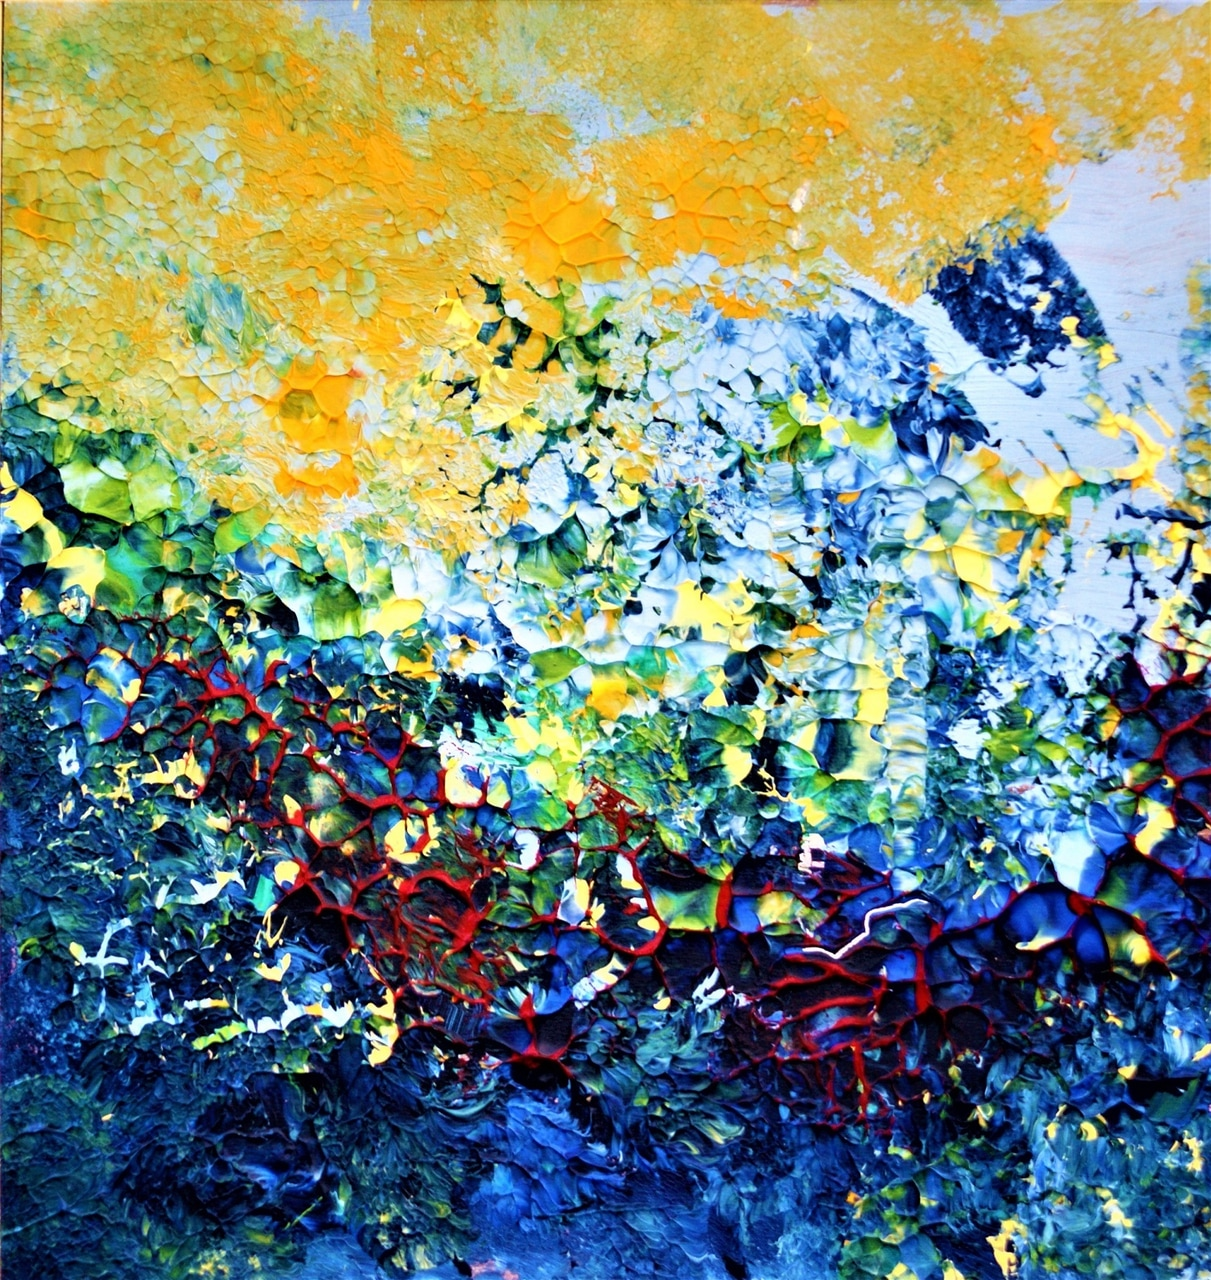 Abstract Painting, artworks, and abstract expressionism image